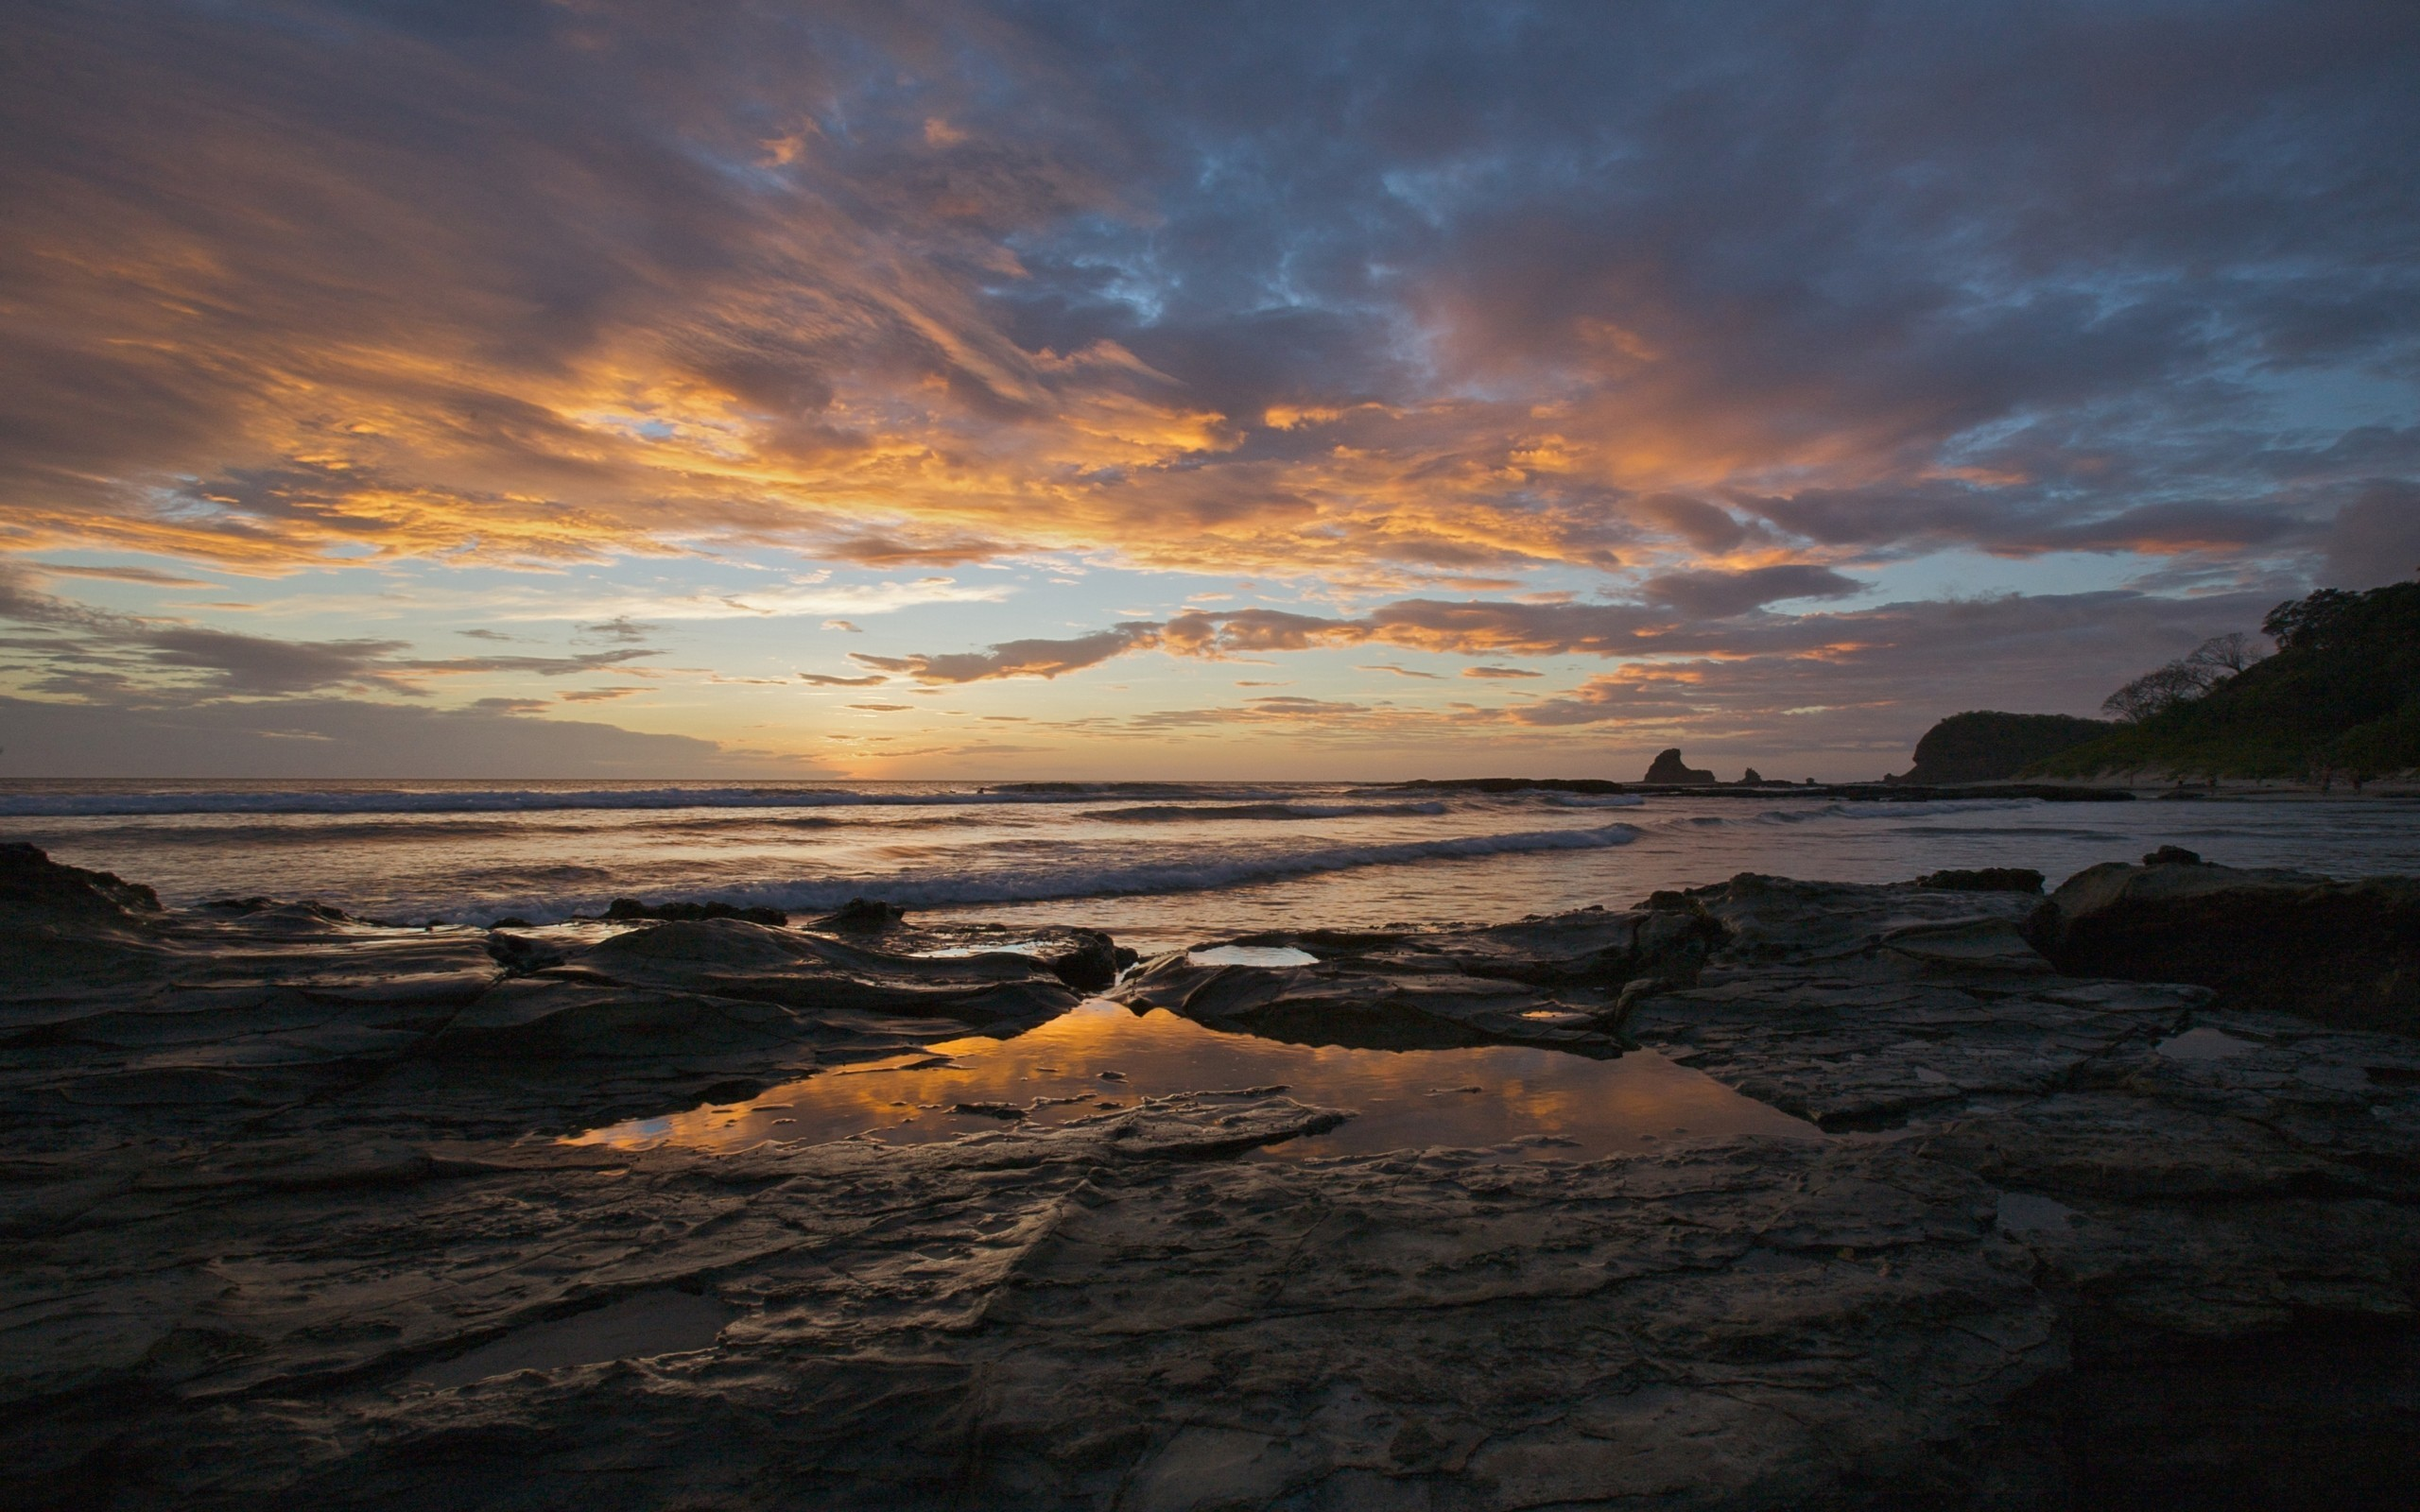 Res: 2560x1600, view, ocean,hd flower images, sea, southern, beaches, nicaragua, water  backgrounds,sunset, sun, coast, nature, landscapes mobile, land, amazing  beaches ...